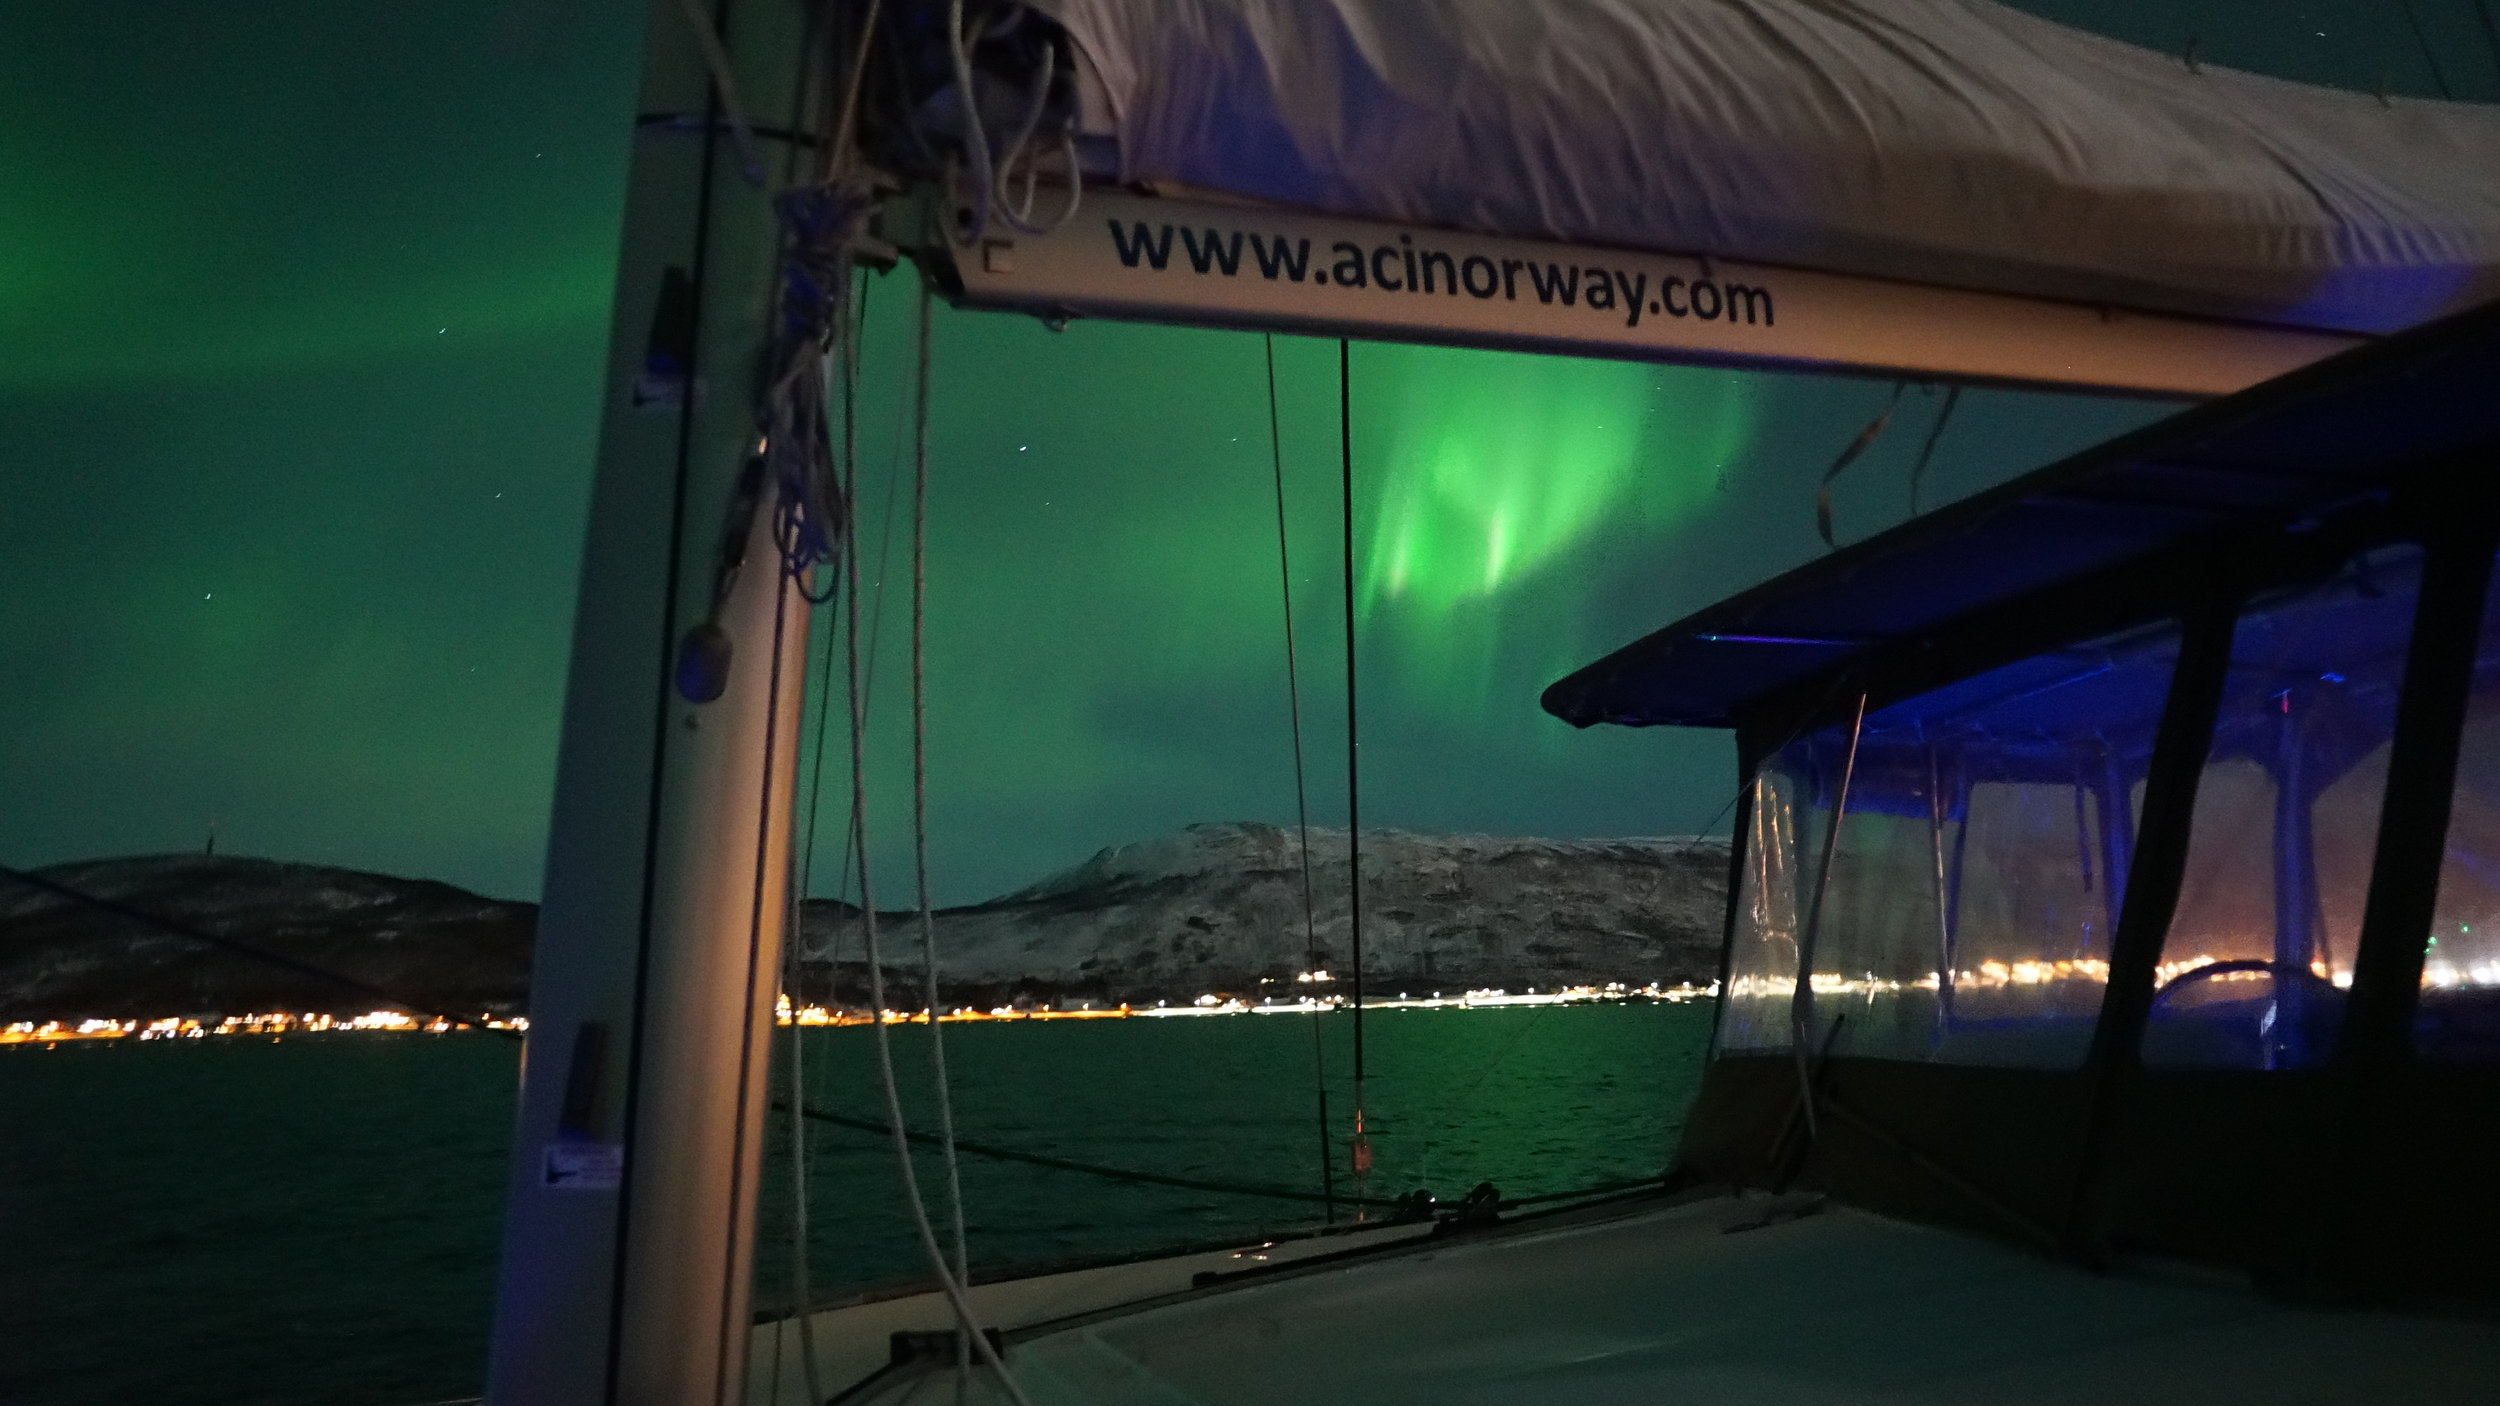 #Northernlight | #Tromso | #VIP | #Guests from Saudi Arabia